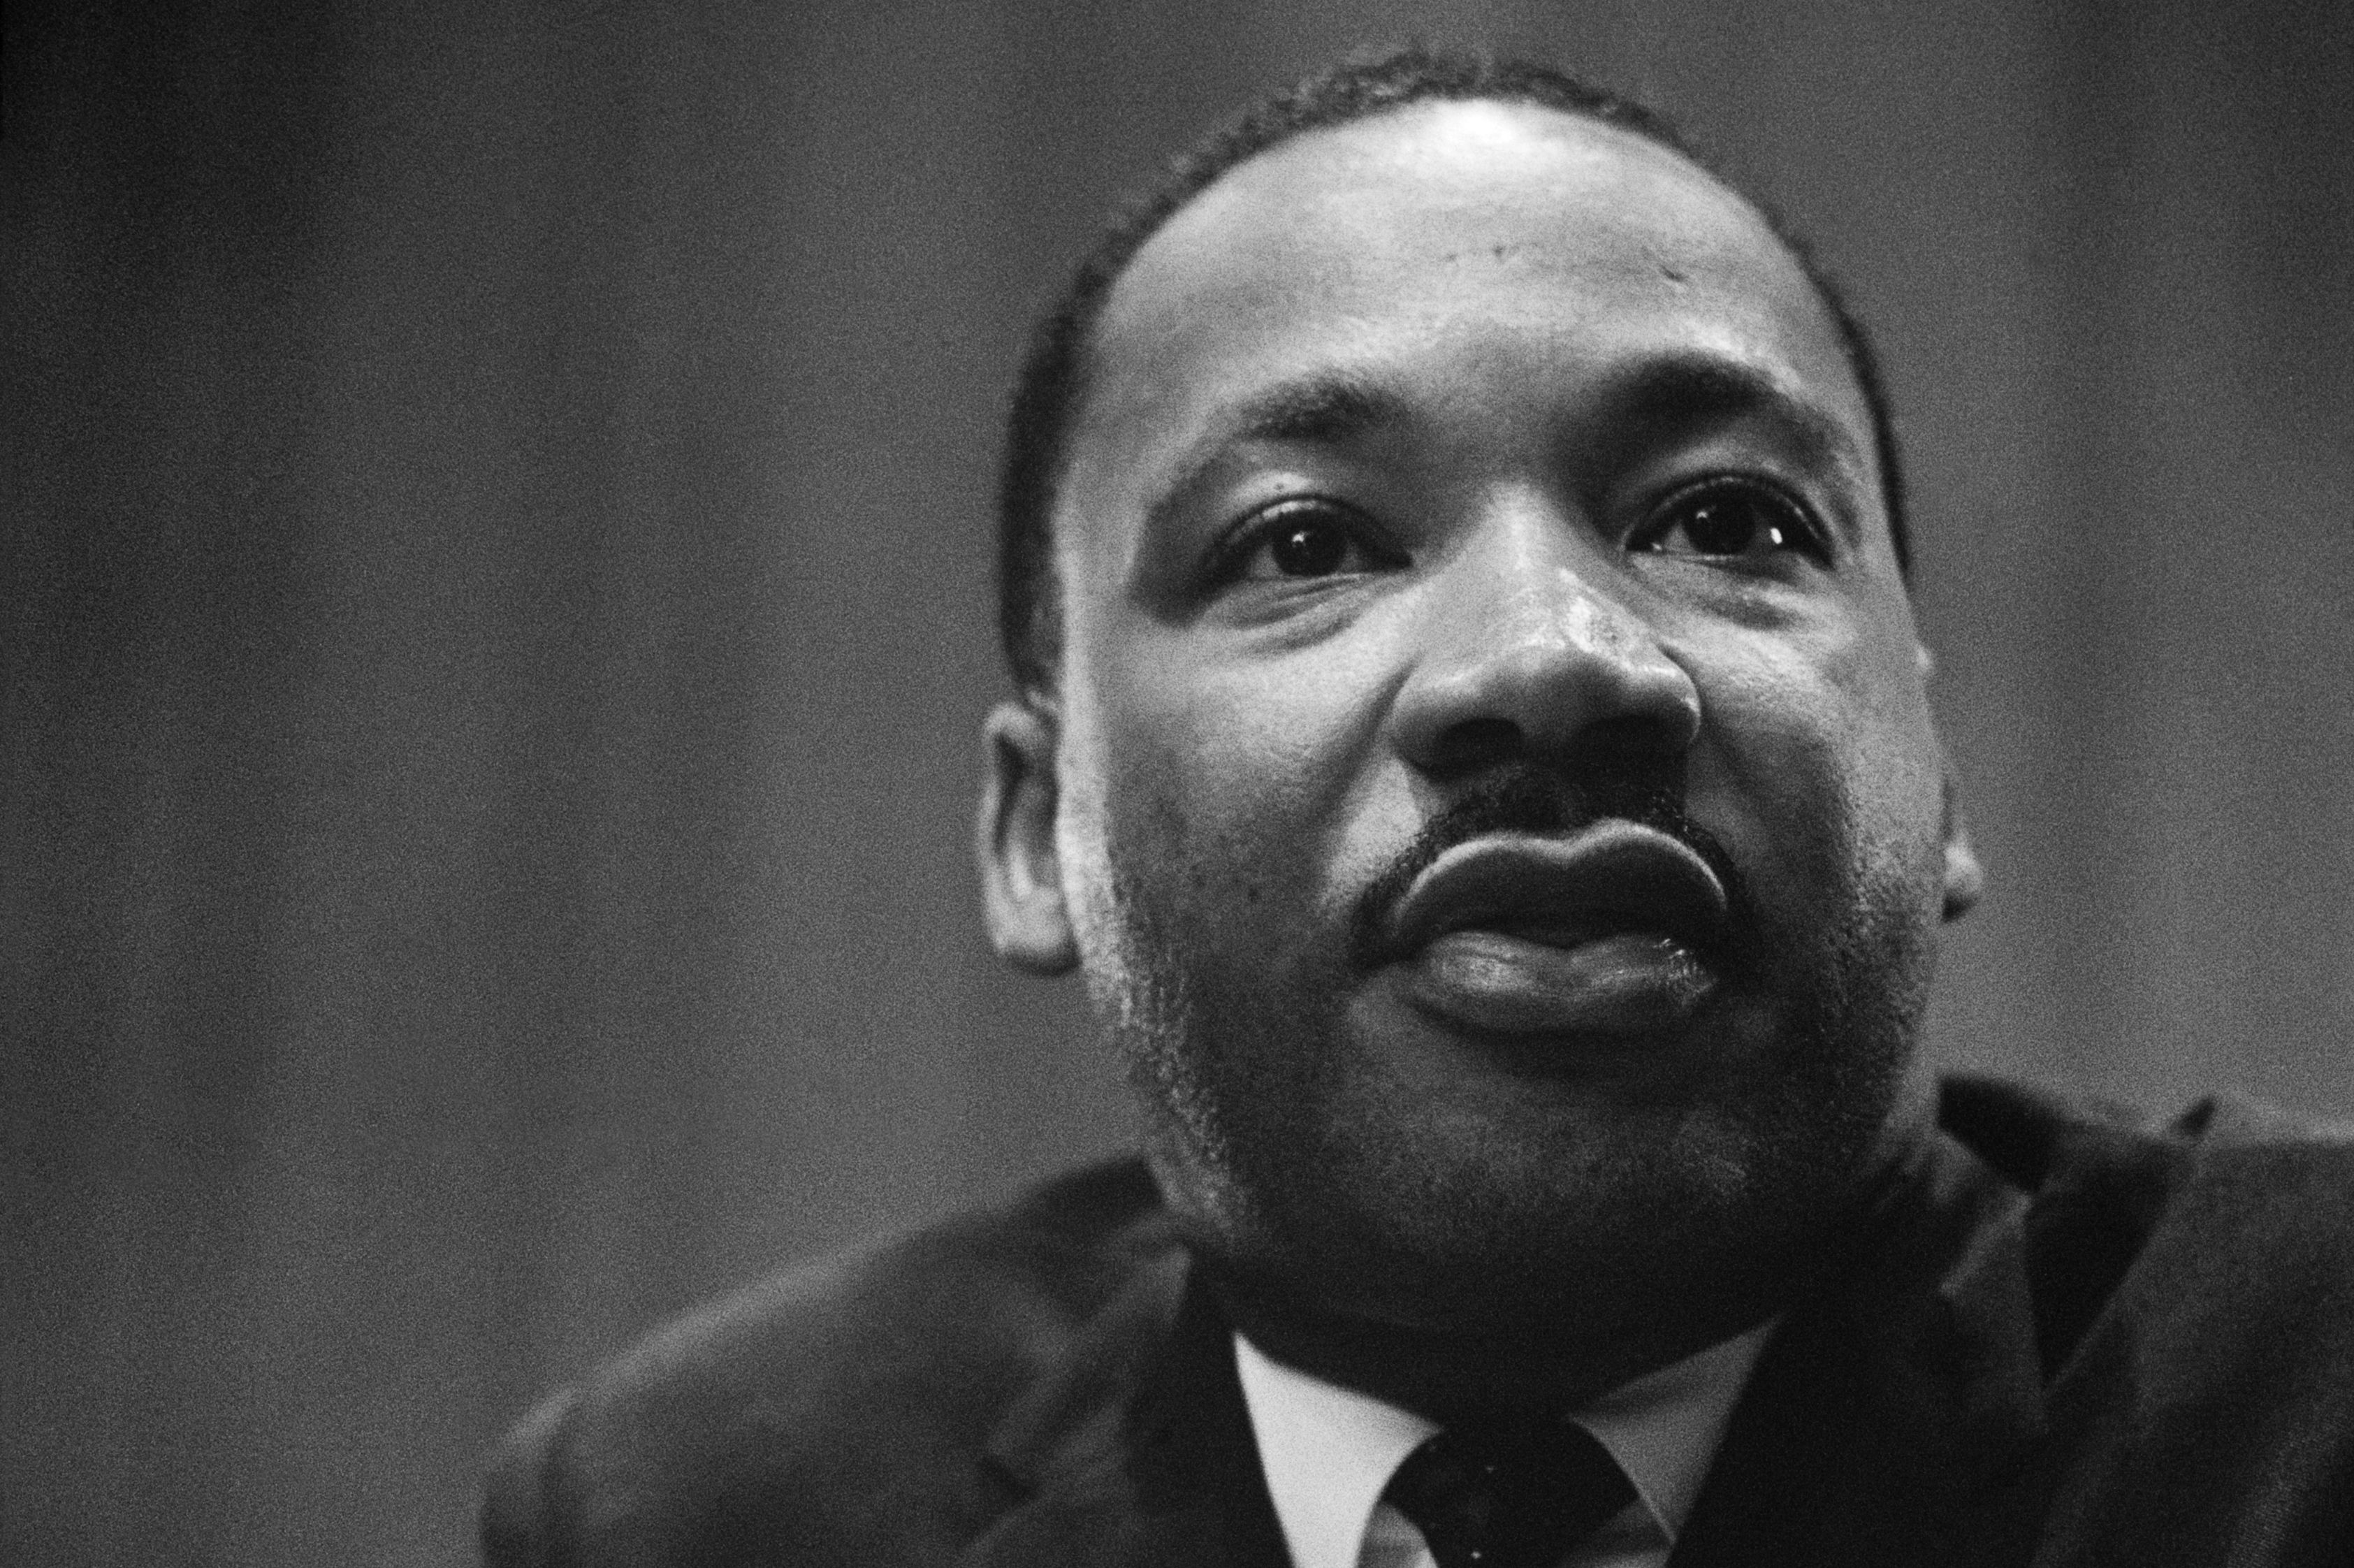 Martin luther king jr. uvo2t4